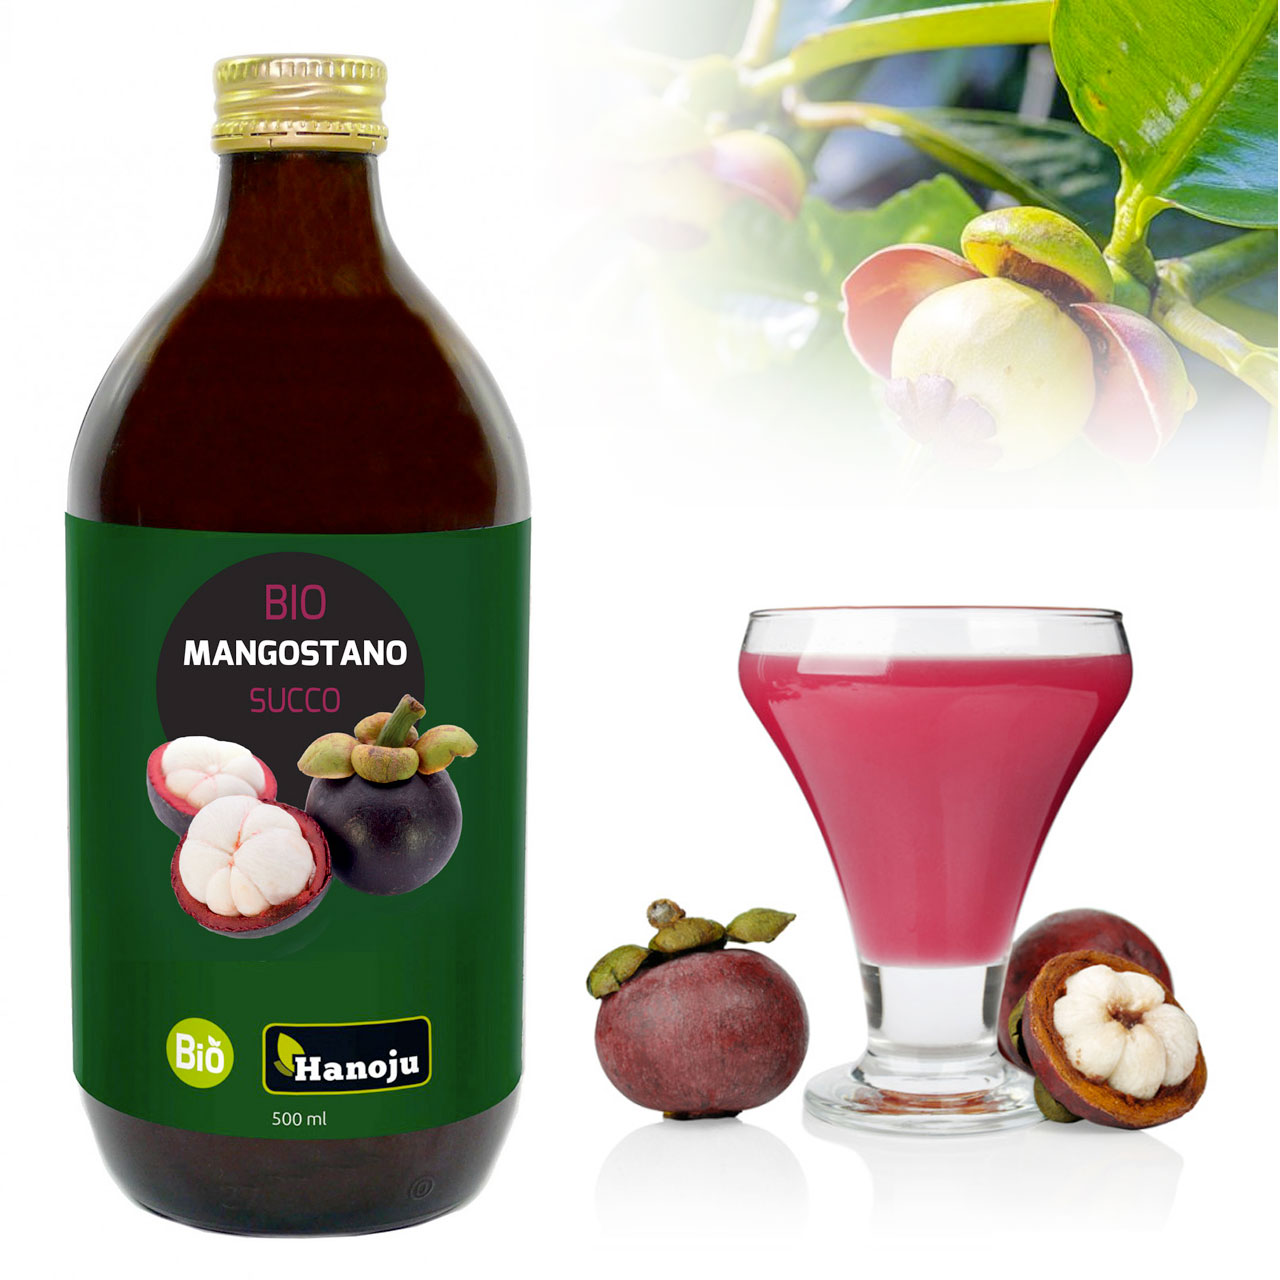 Pure Mangosteen juice without added sugar